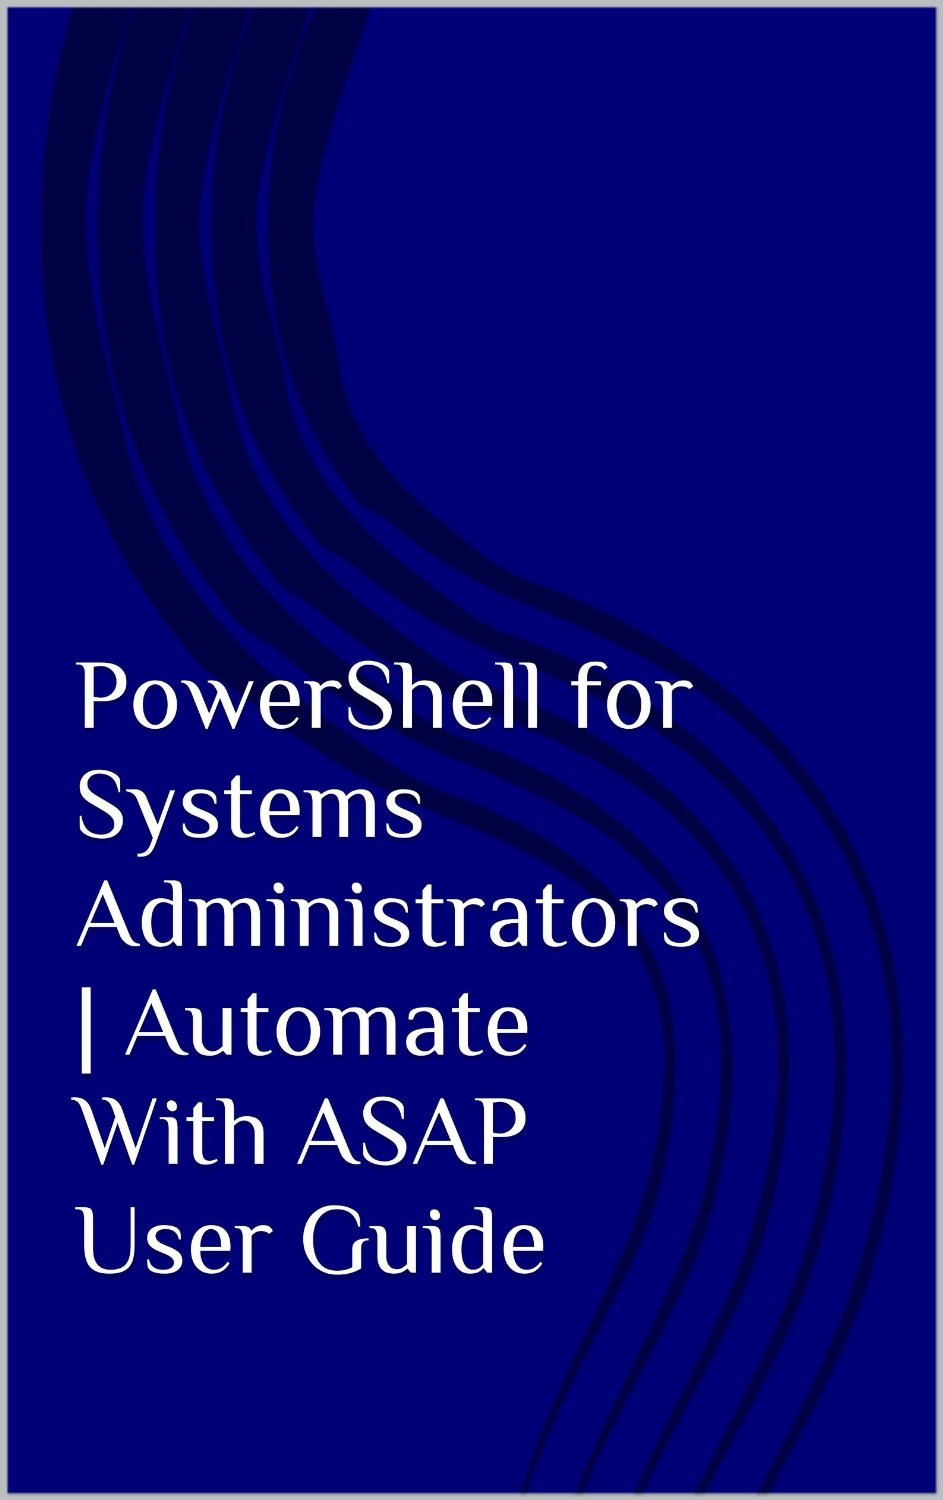 PowerShell for Systems Administrators | Automate VirtualBox With ASAP User Guide free download